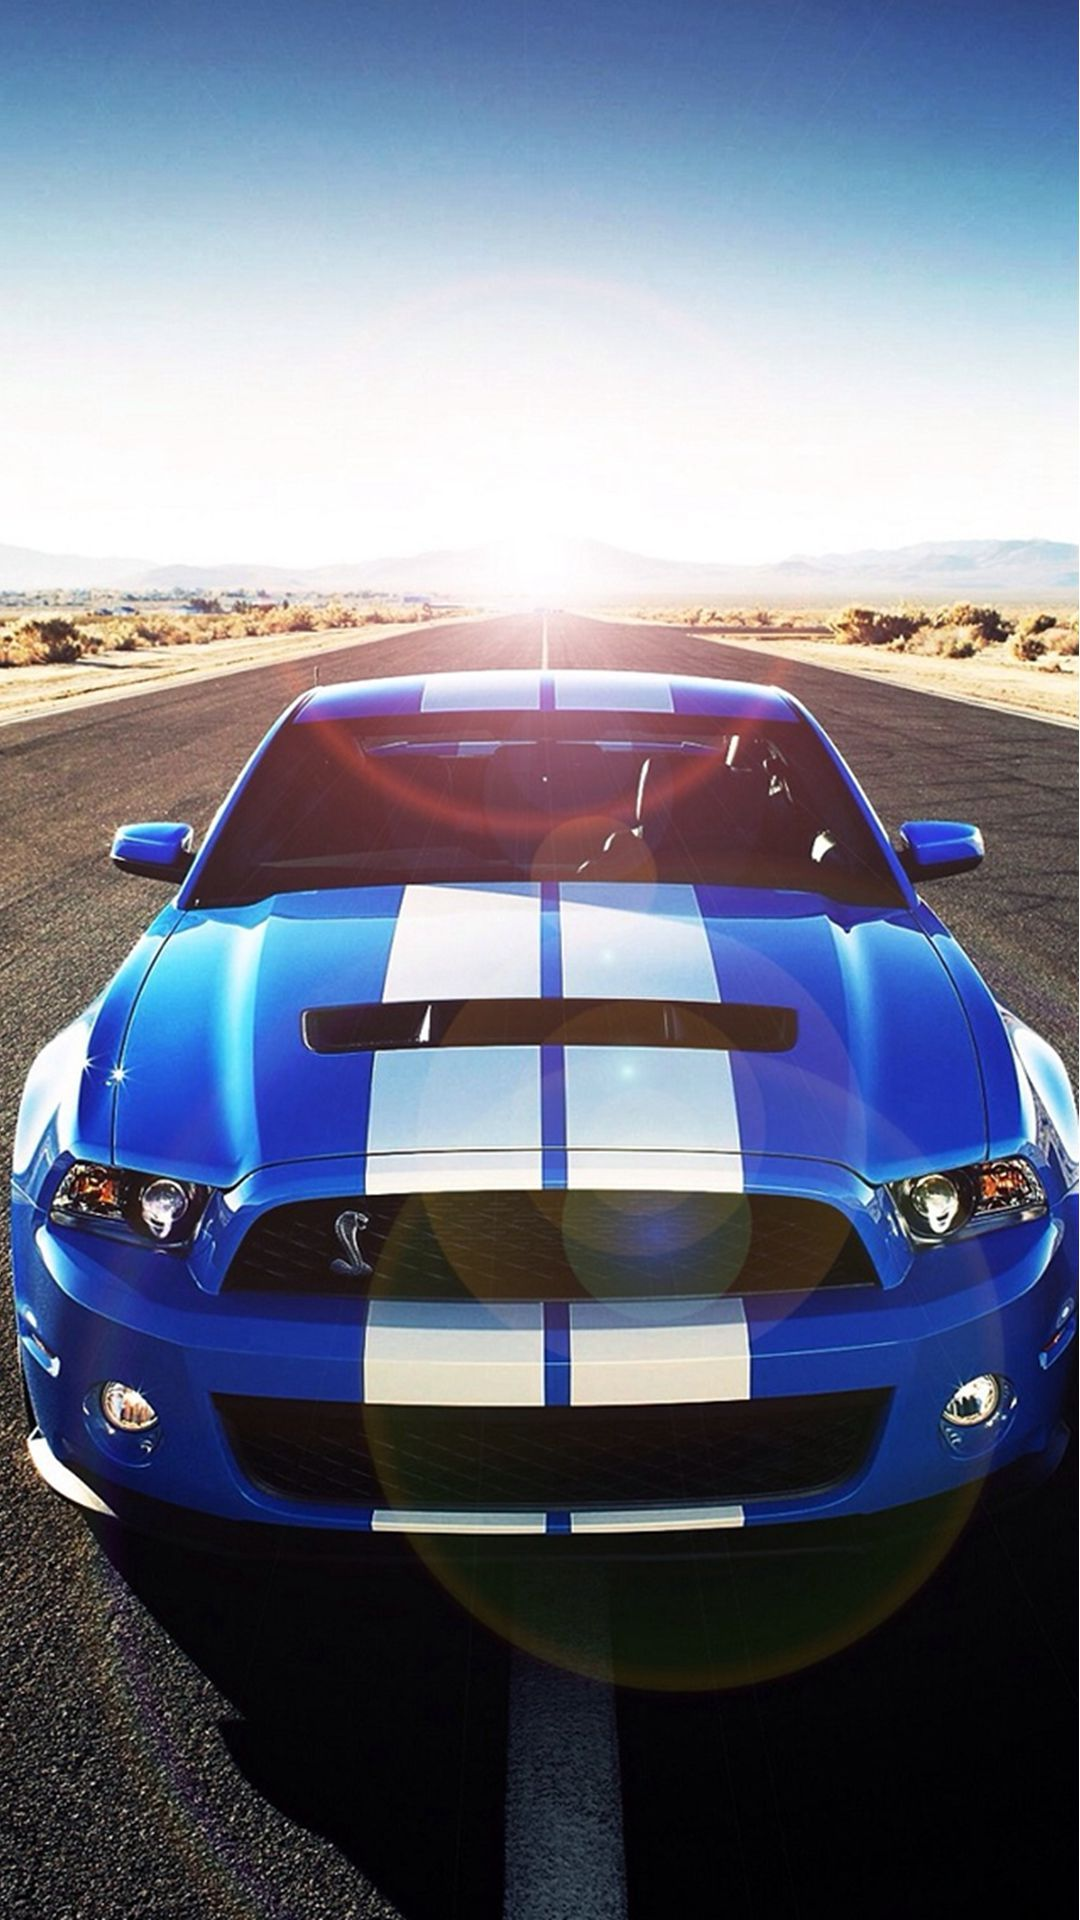 Sunshine Road Blue Cool Car IPhone 6 Plus Wallpaper